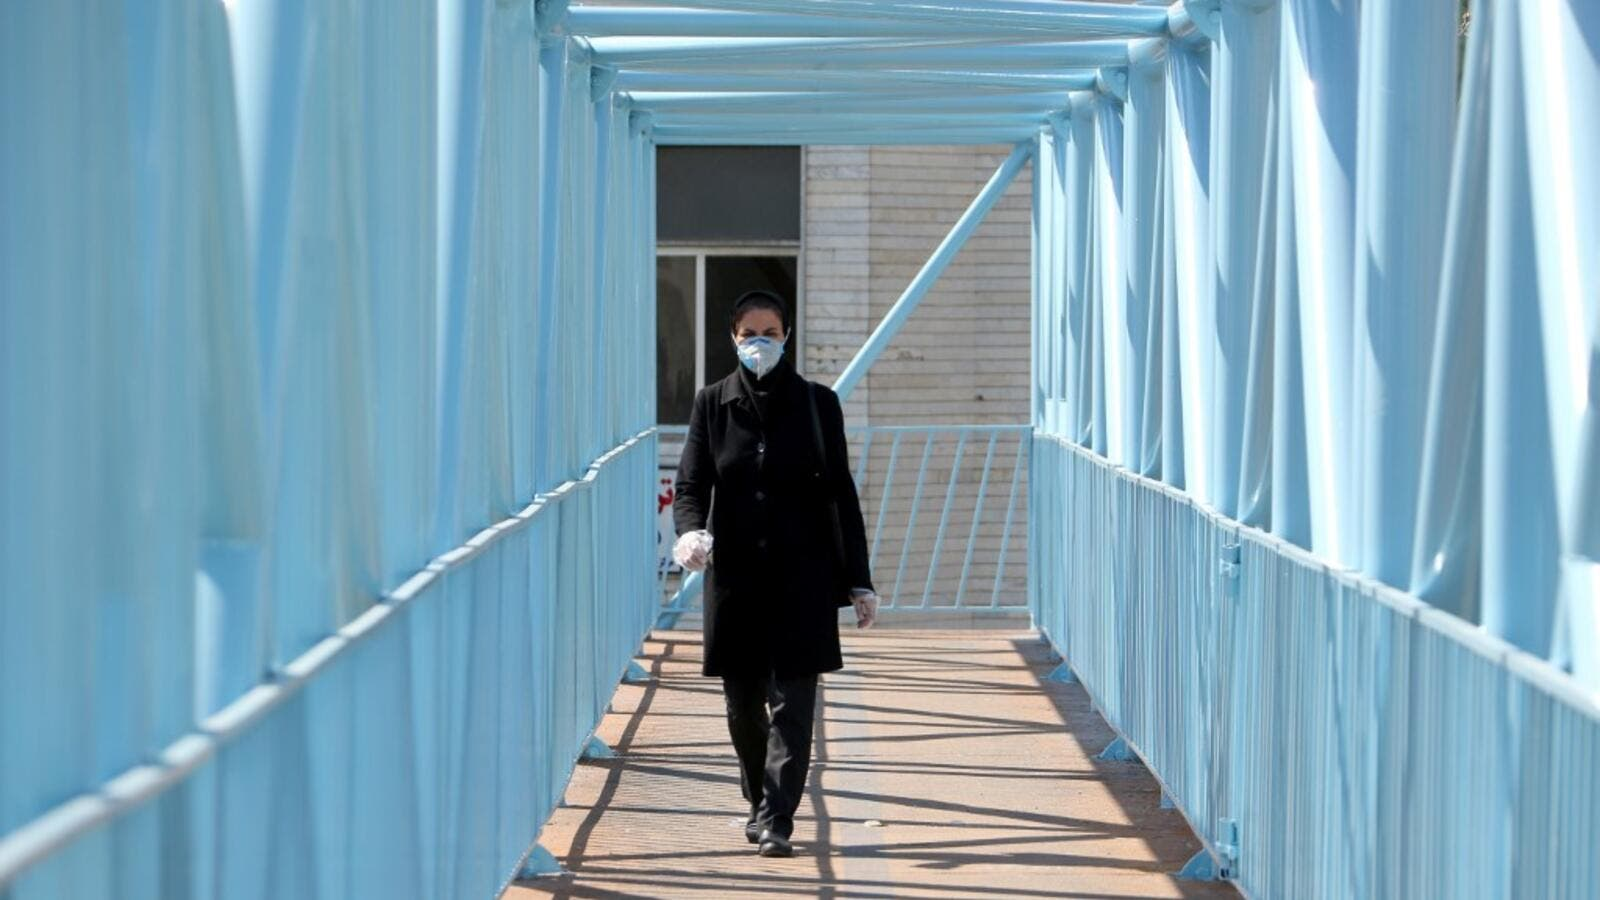 Iran announces 63 new virus deaths, taking total to 354